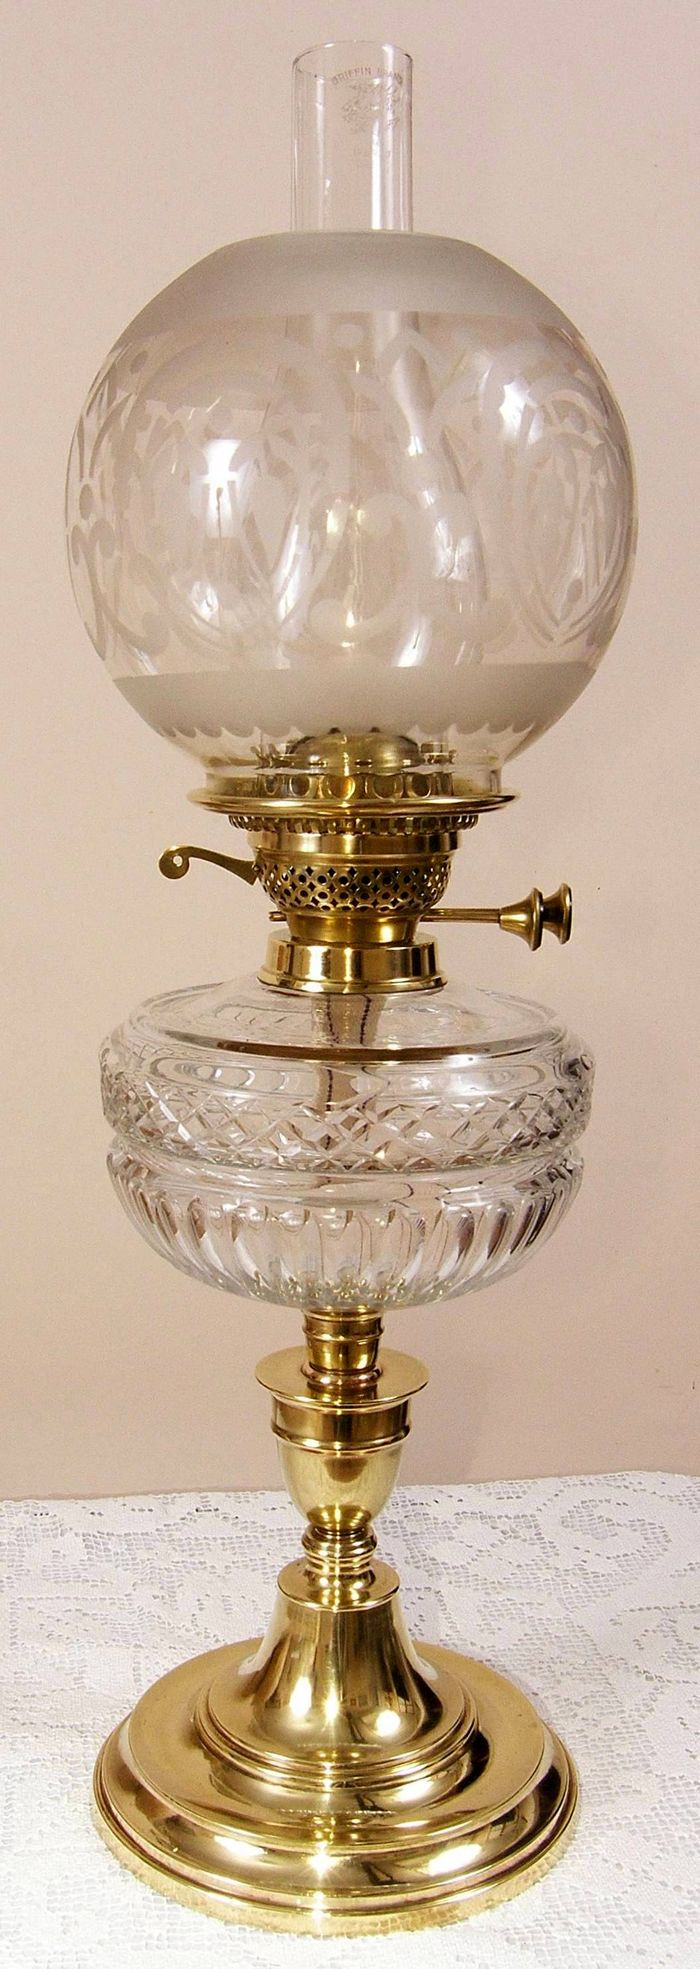 antique lighting for sale uk. oil lamps antique and collectable, all our are in perfect working order unless otherwise stated lighting for sale uk .